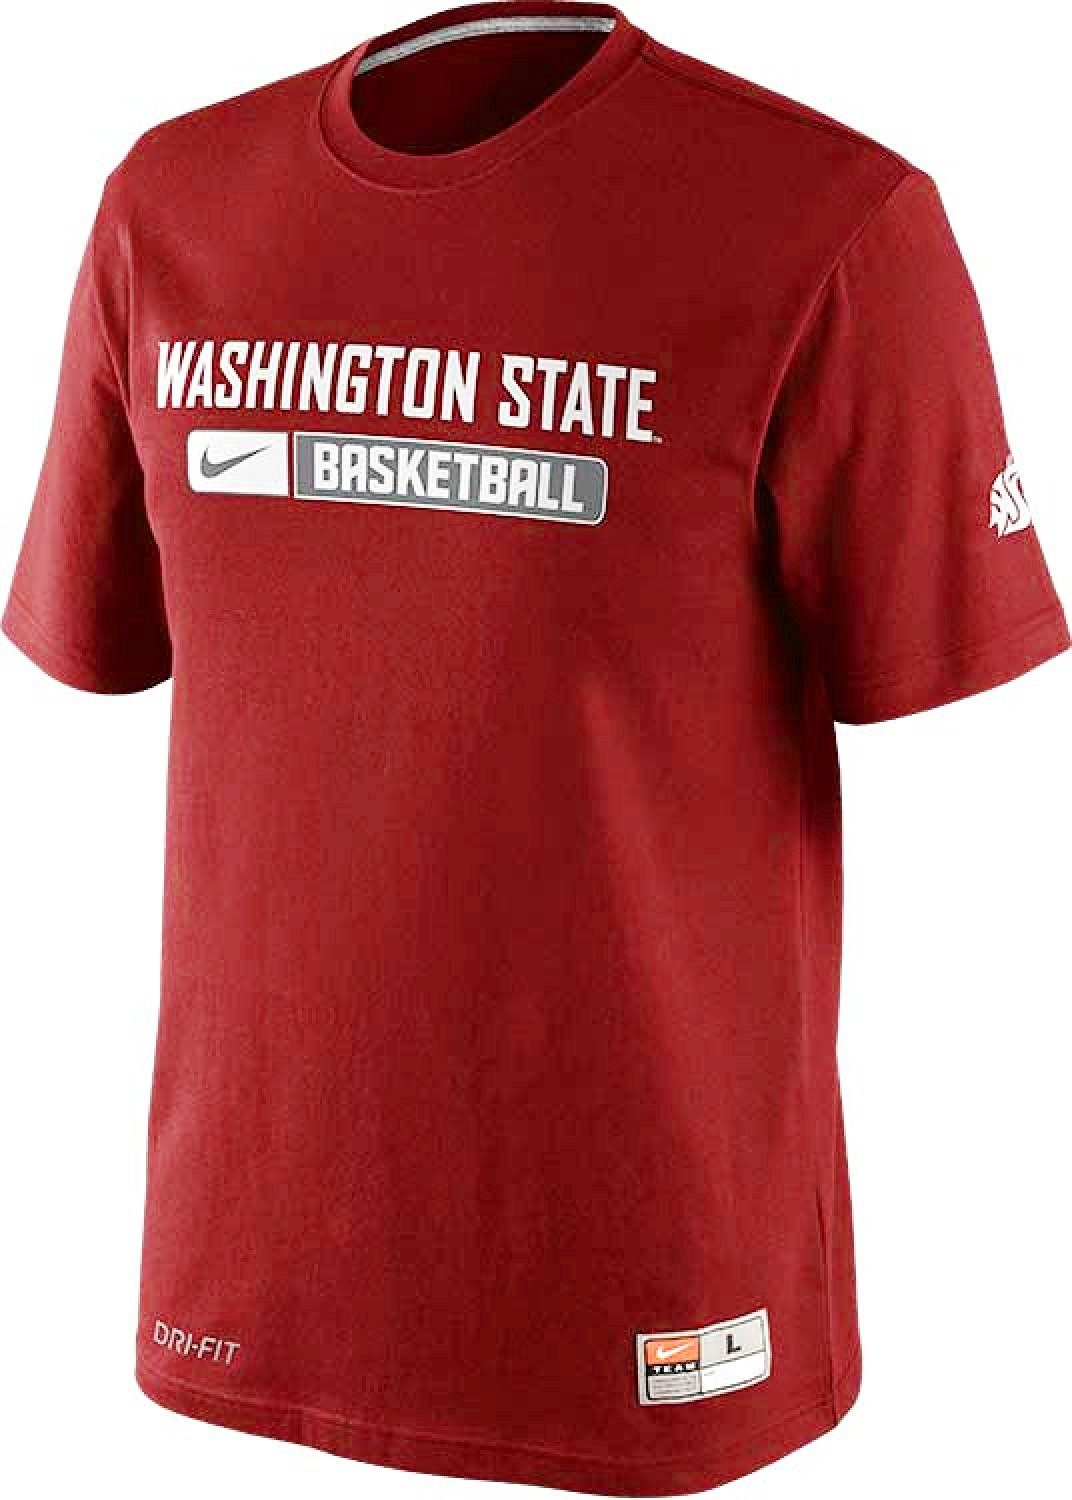 sneakers for cheap b2cf5 b9ef9 Get Quotations · Nike Washington State Cougars Basketball Team Issued Dri-FIT  Cotton Mens T-Shirt